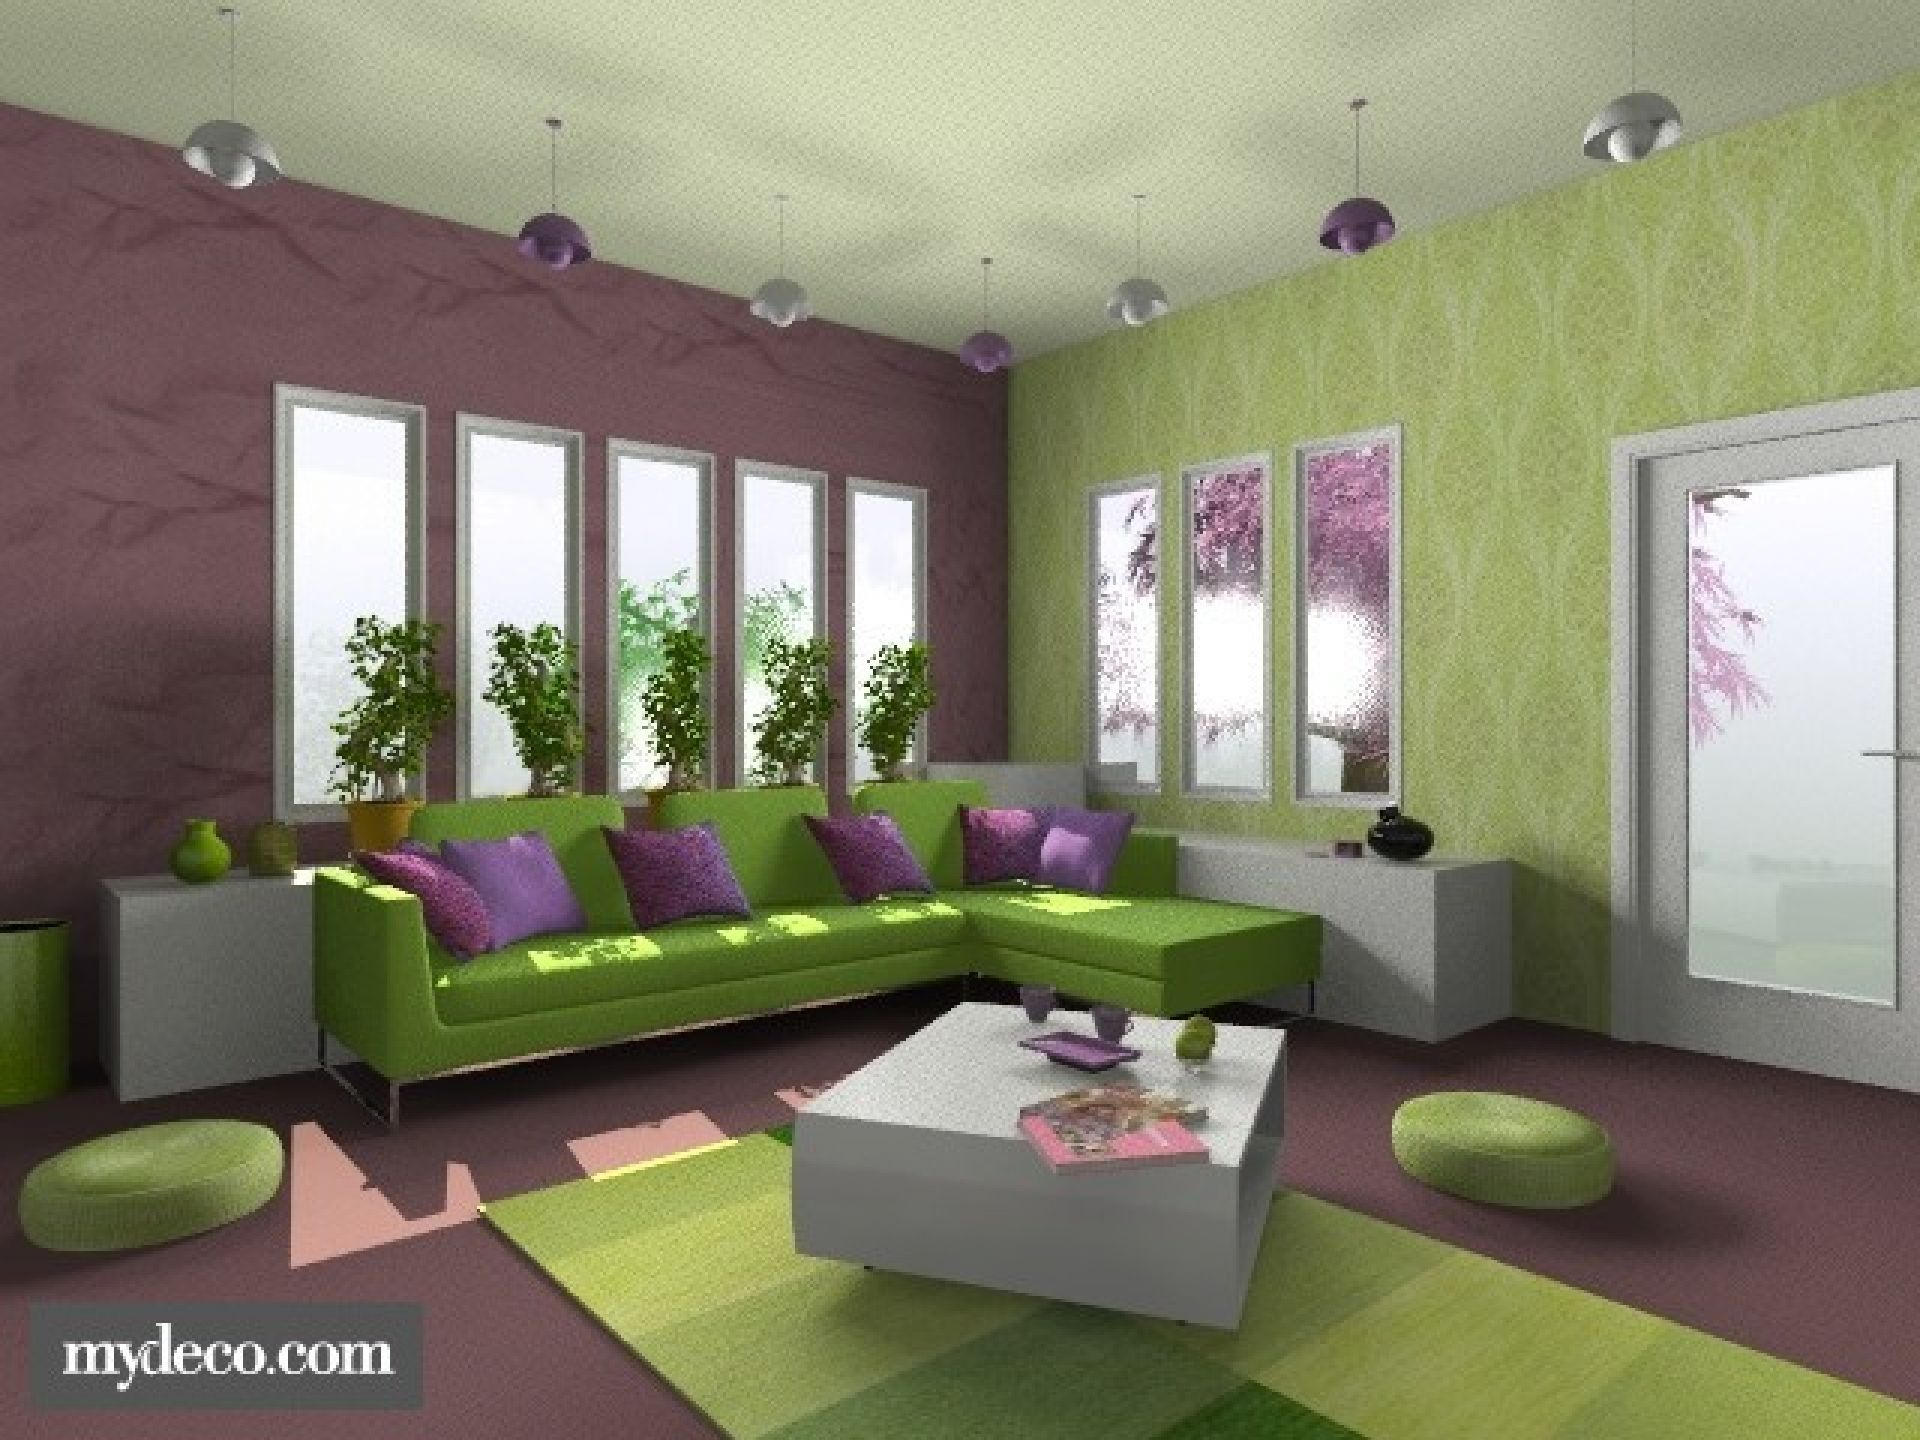 Living room color schemes green - Bedroom Pictures Of Living Room Color Schemes Living Room Color